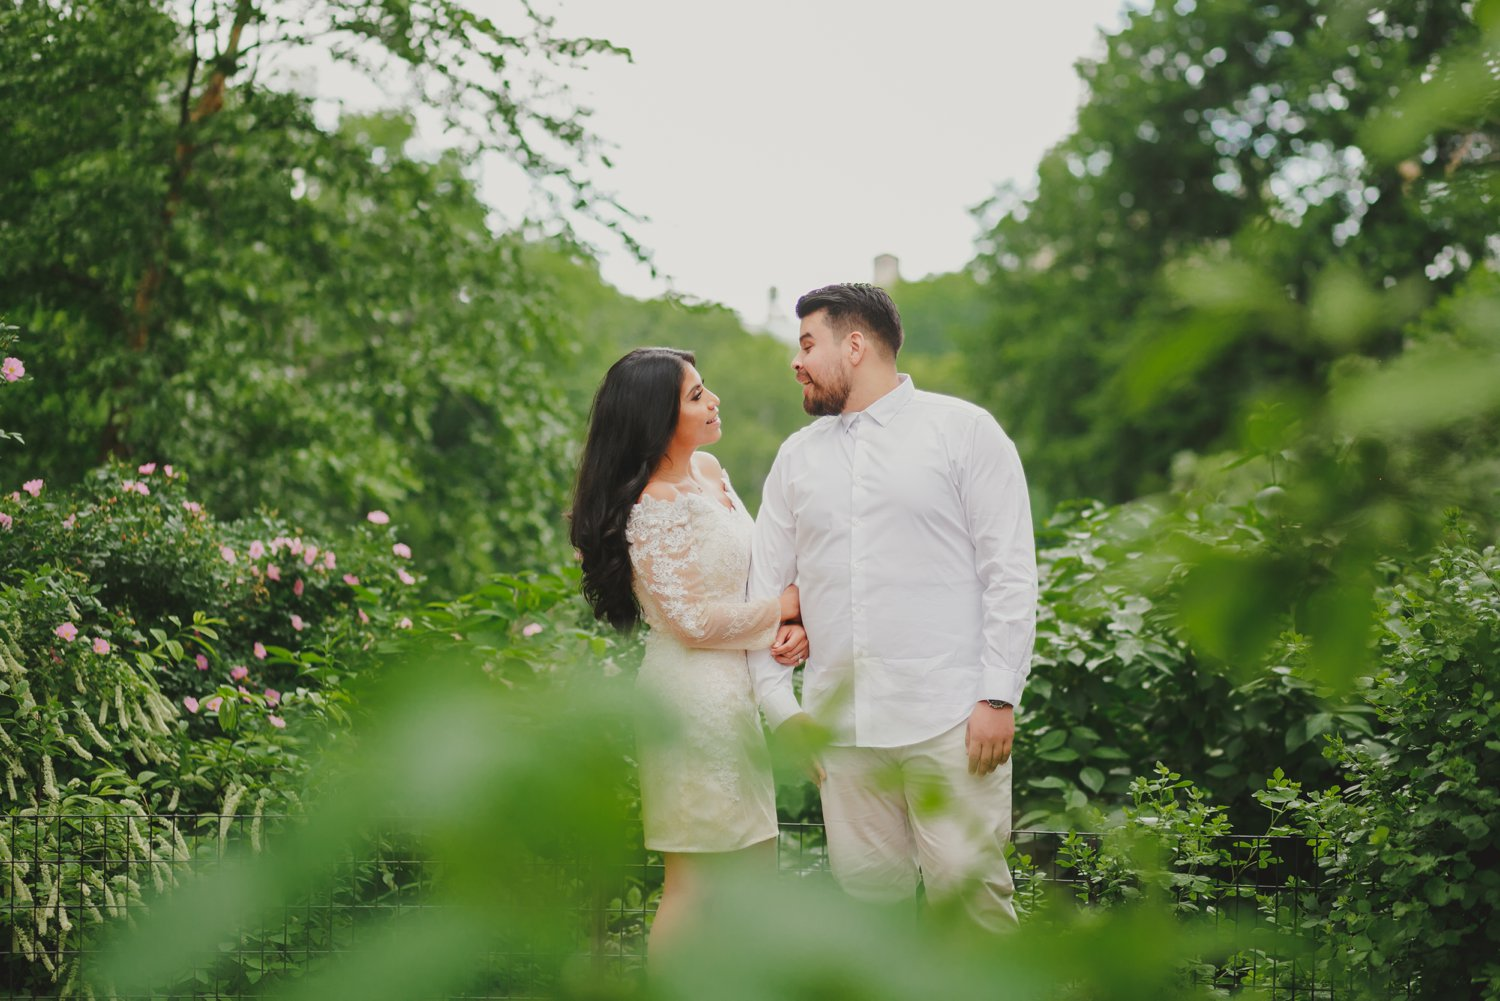 80NYC-NJ-ENGAGEMENT-PHOTOGRAPHY-BY-INTOTHESTORY-MOO-JAE.JPG